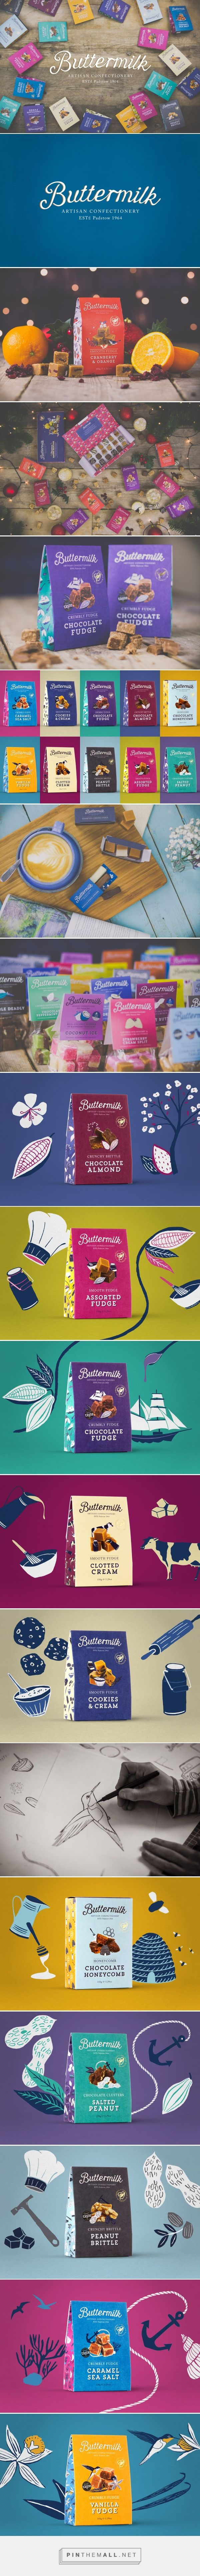 Buttermilk Confectionery - Packaging of the World - Creative Package Design Gallery - http://www.packagingoftheworld.com/2016/08/buttermilk-confectionery.html